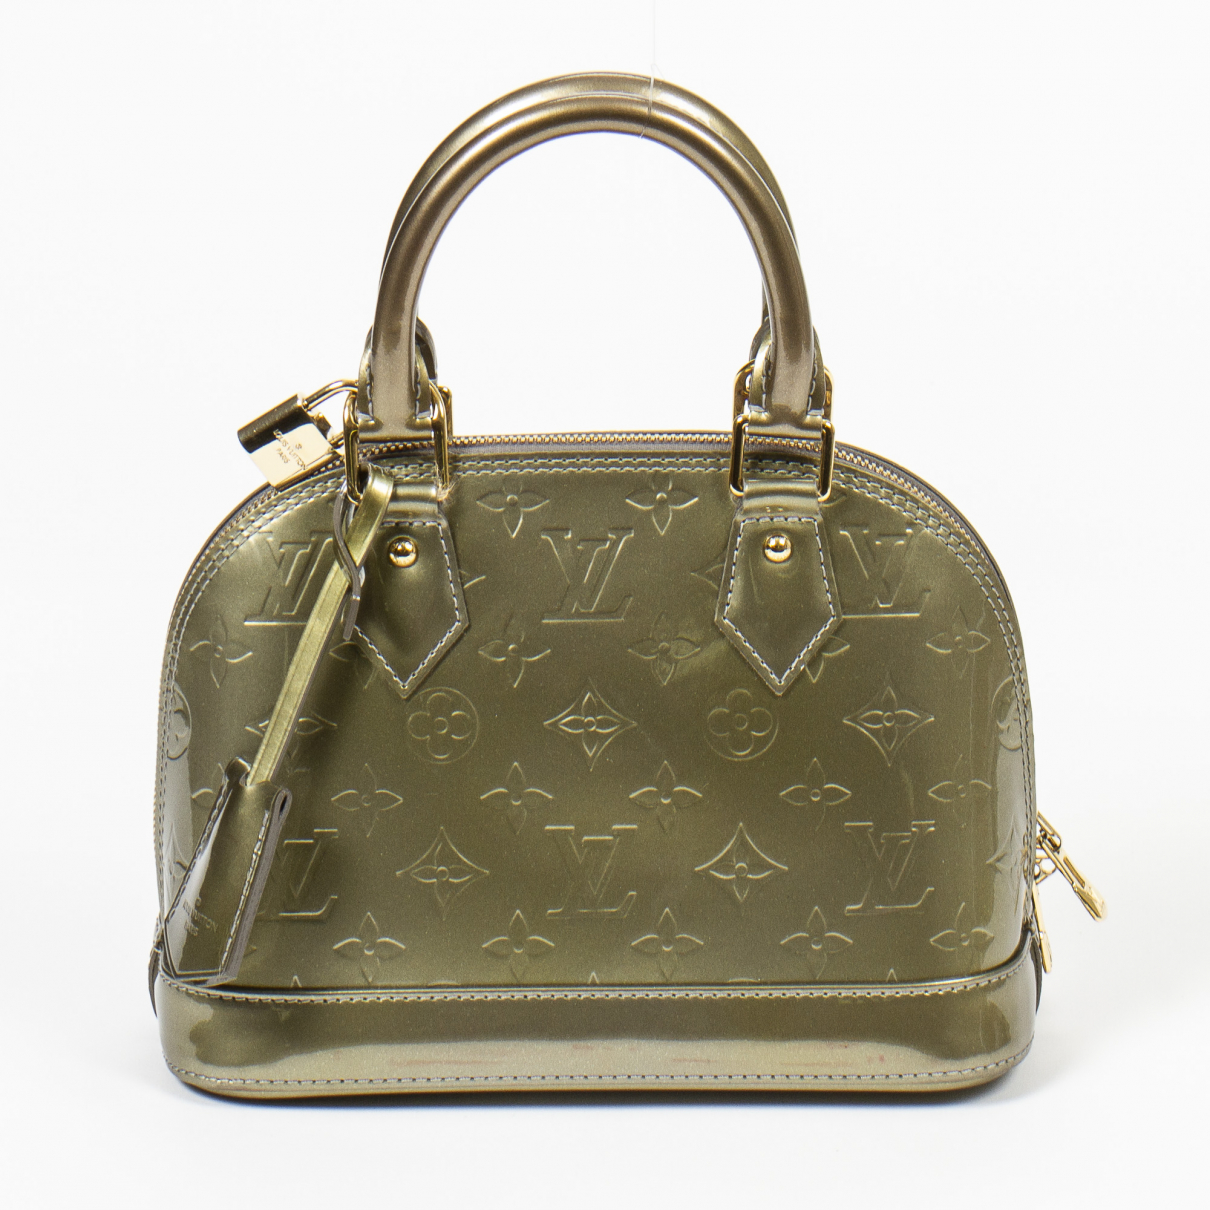 Louis Vuitton Alma BB Handtasche in Lackleder